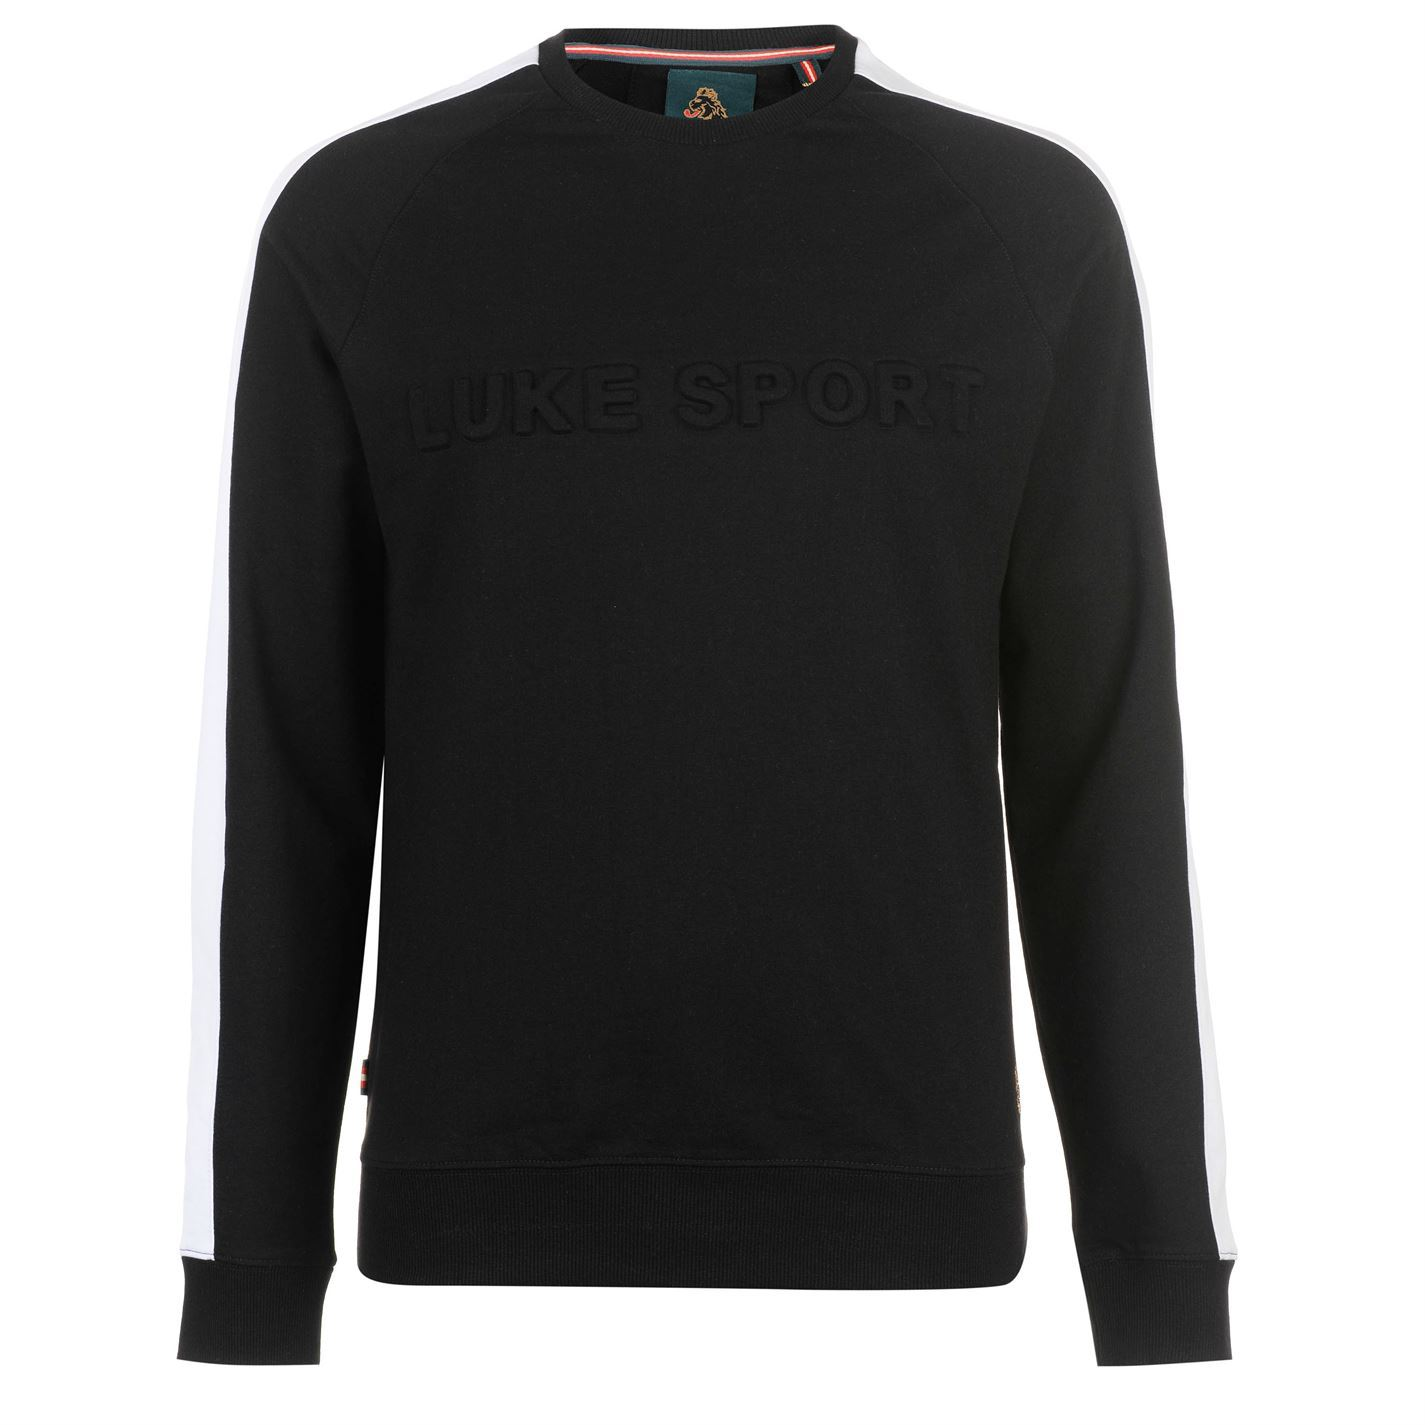 Luke Sport Debossed Sweater Sweatshirt Uomo Sweater Debossed Top Jumper 94d825